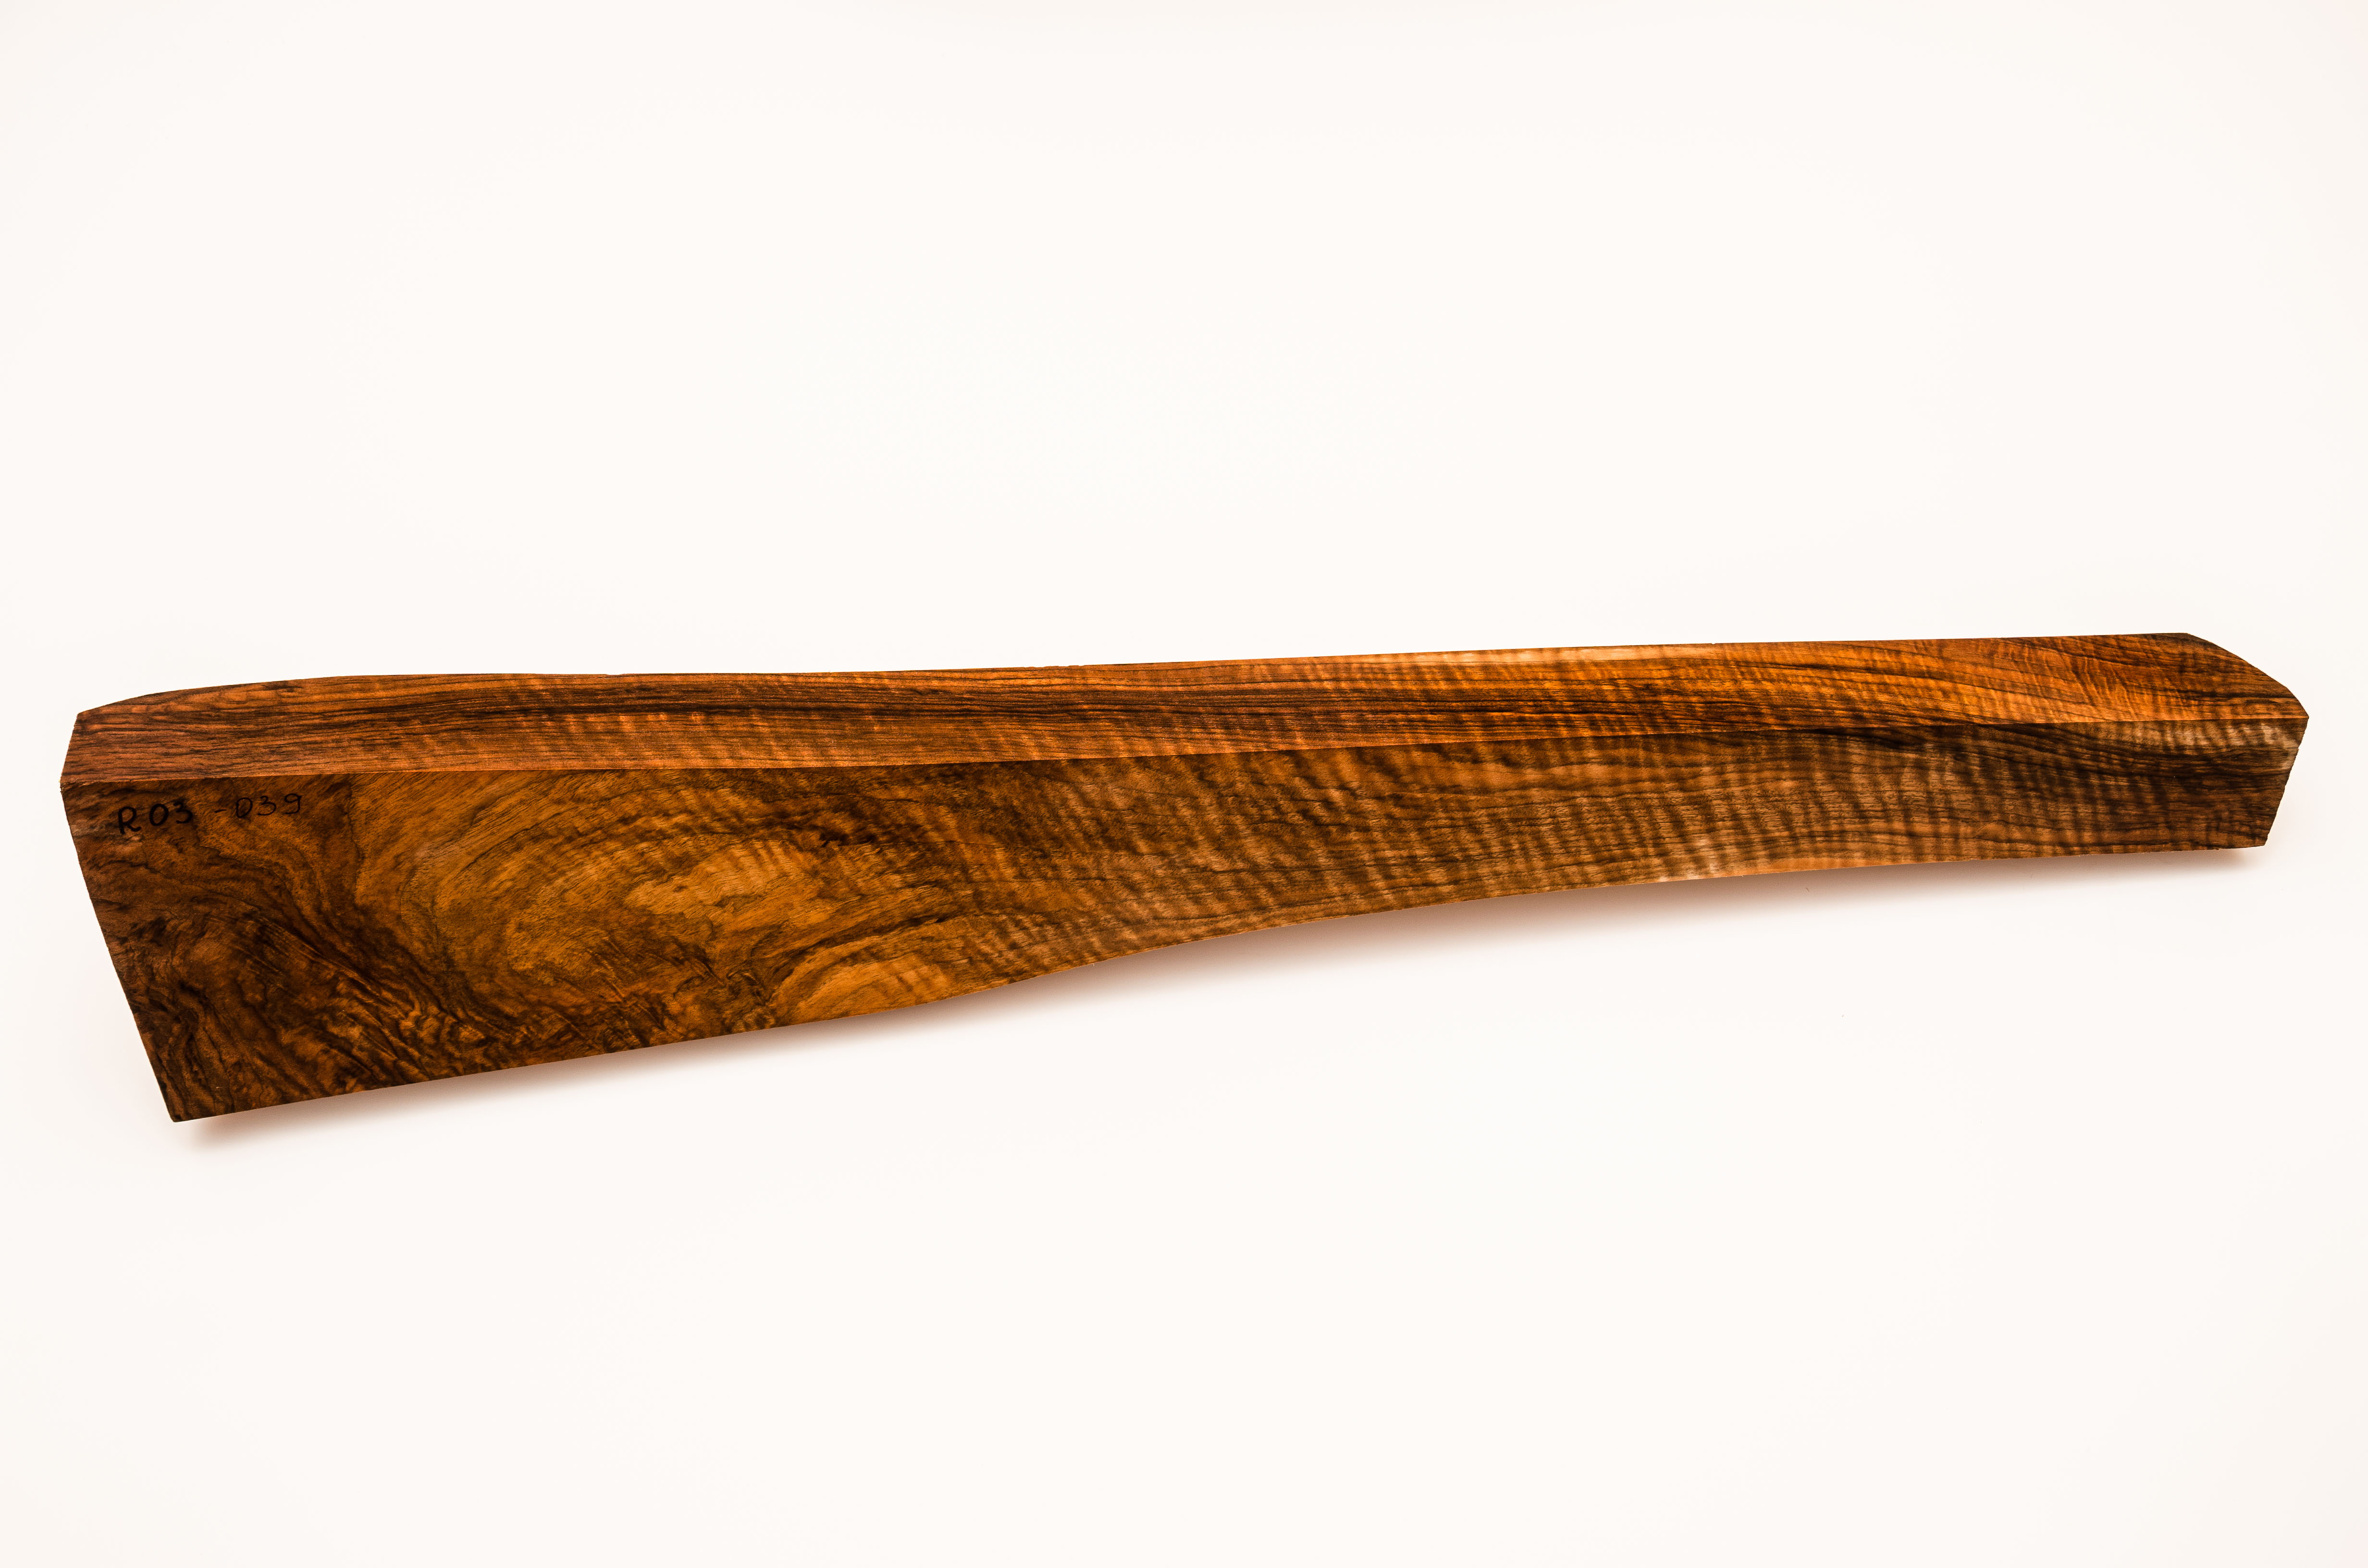 walnut_stock_blanks_for_guns_and_rifles-1221